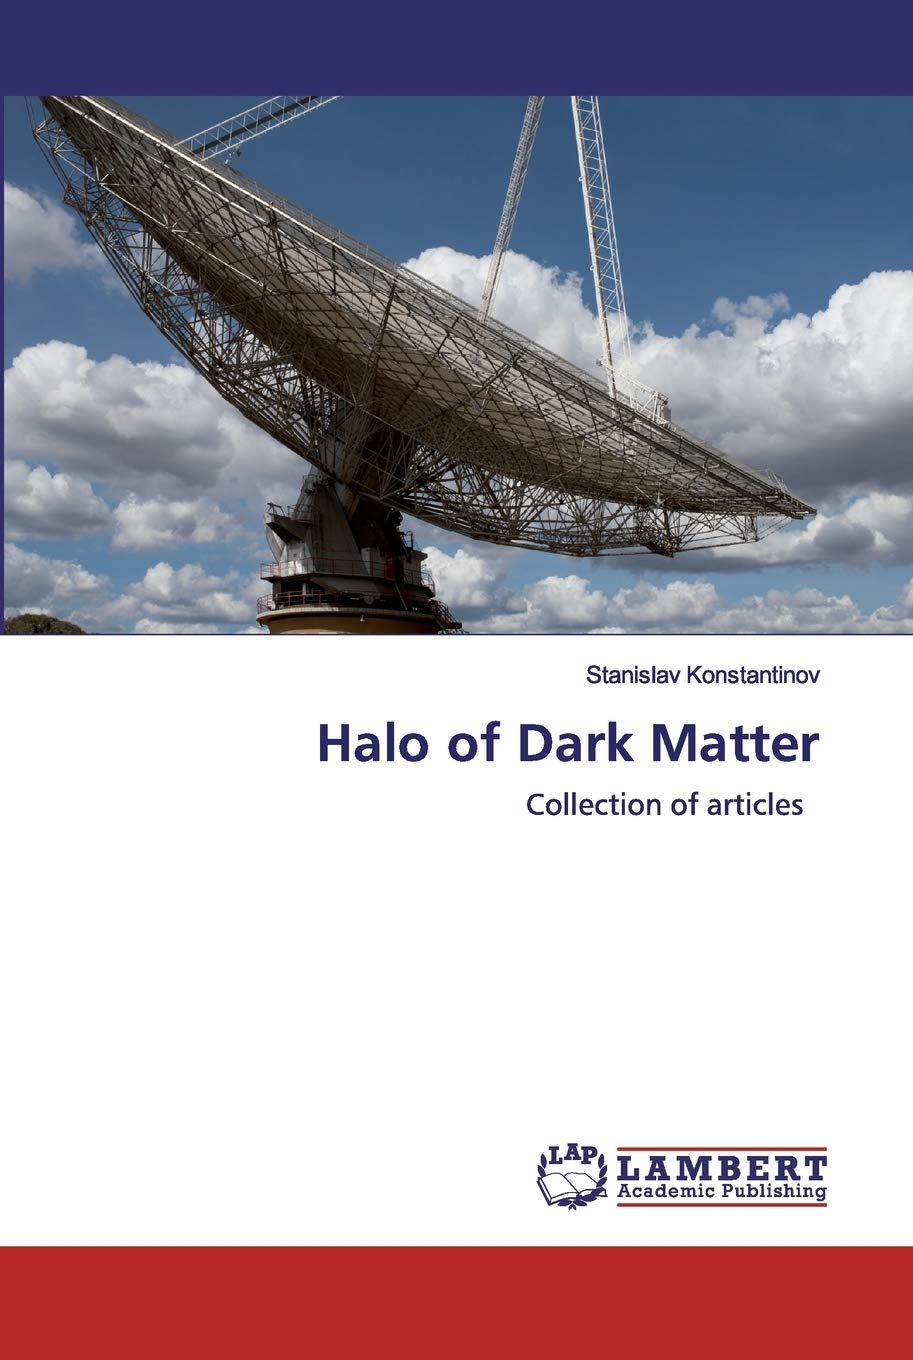 Halo of Dark Matter: Collection of articles: Amazon.es ...